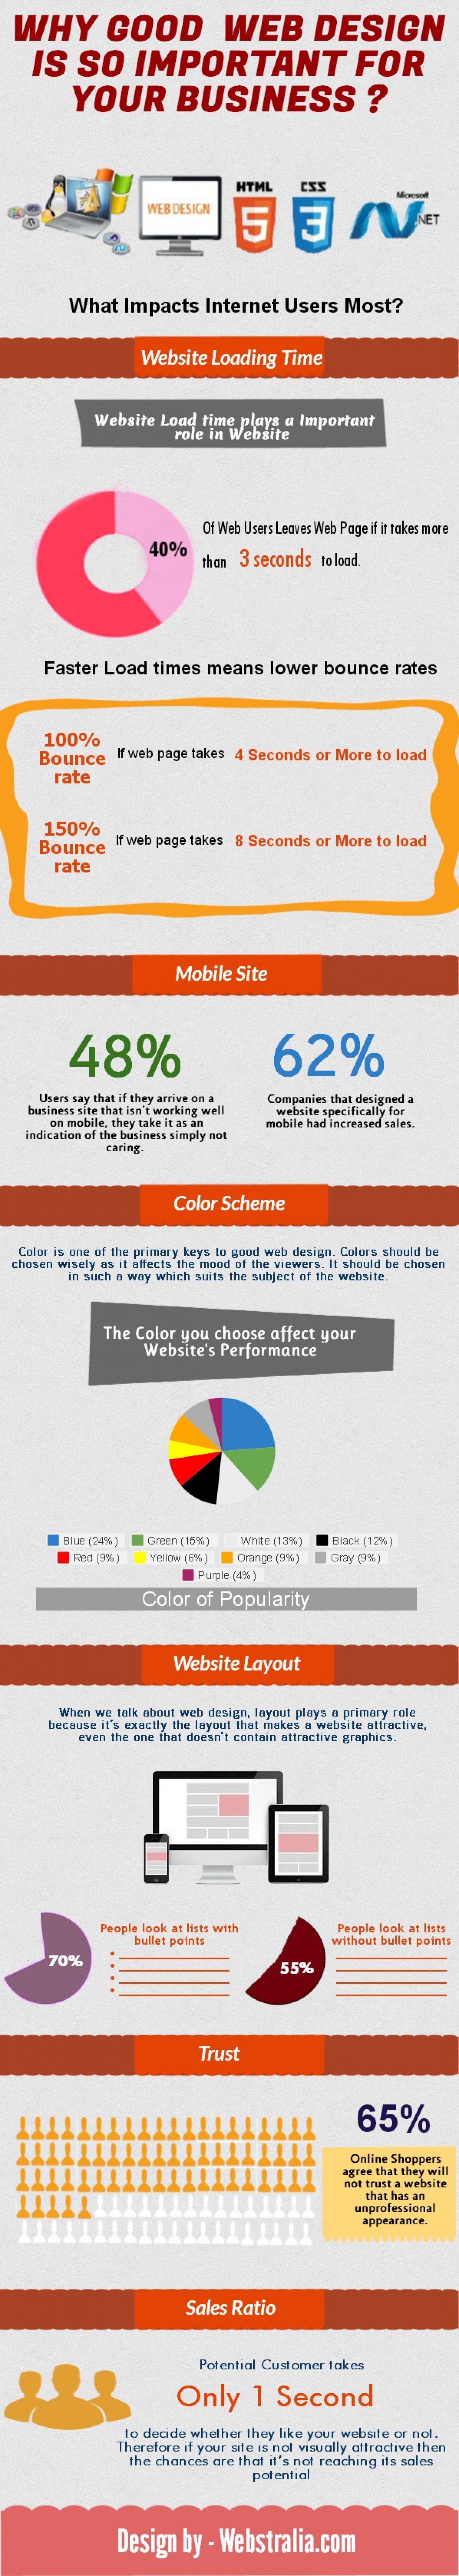 Why Good Web Design is so Important for your Business? Infographic